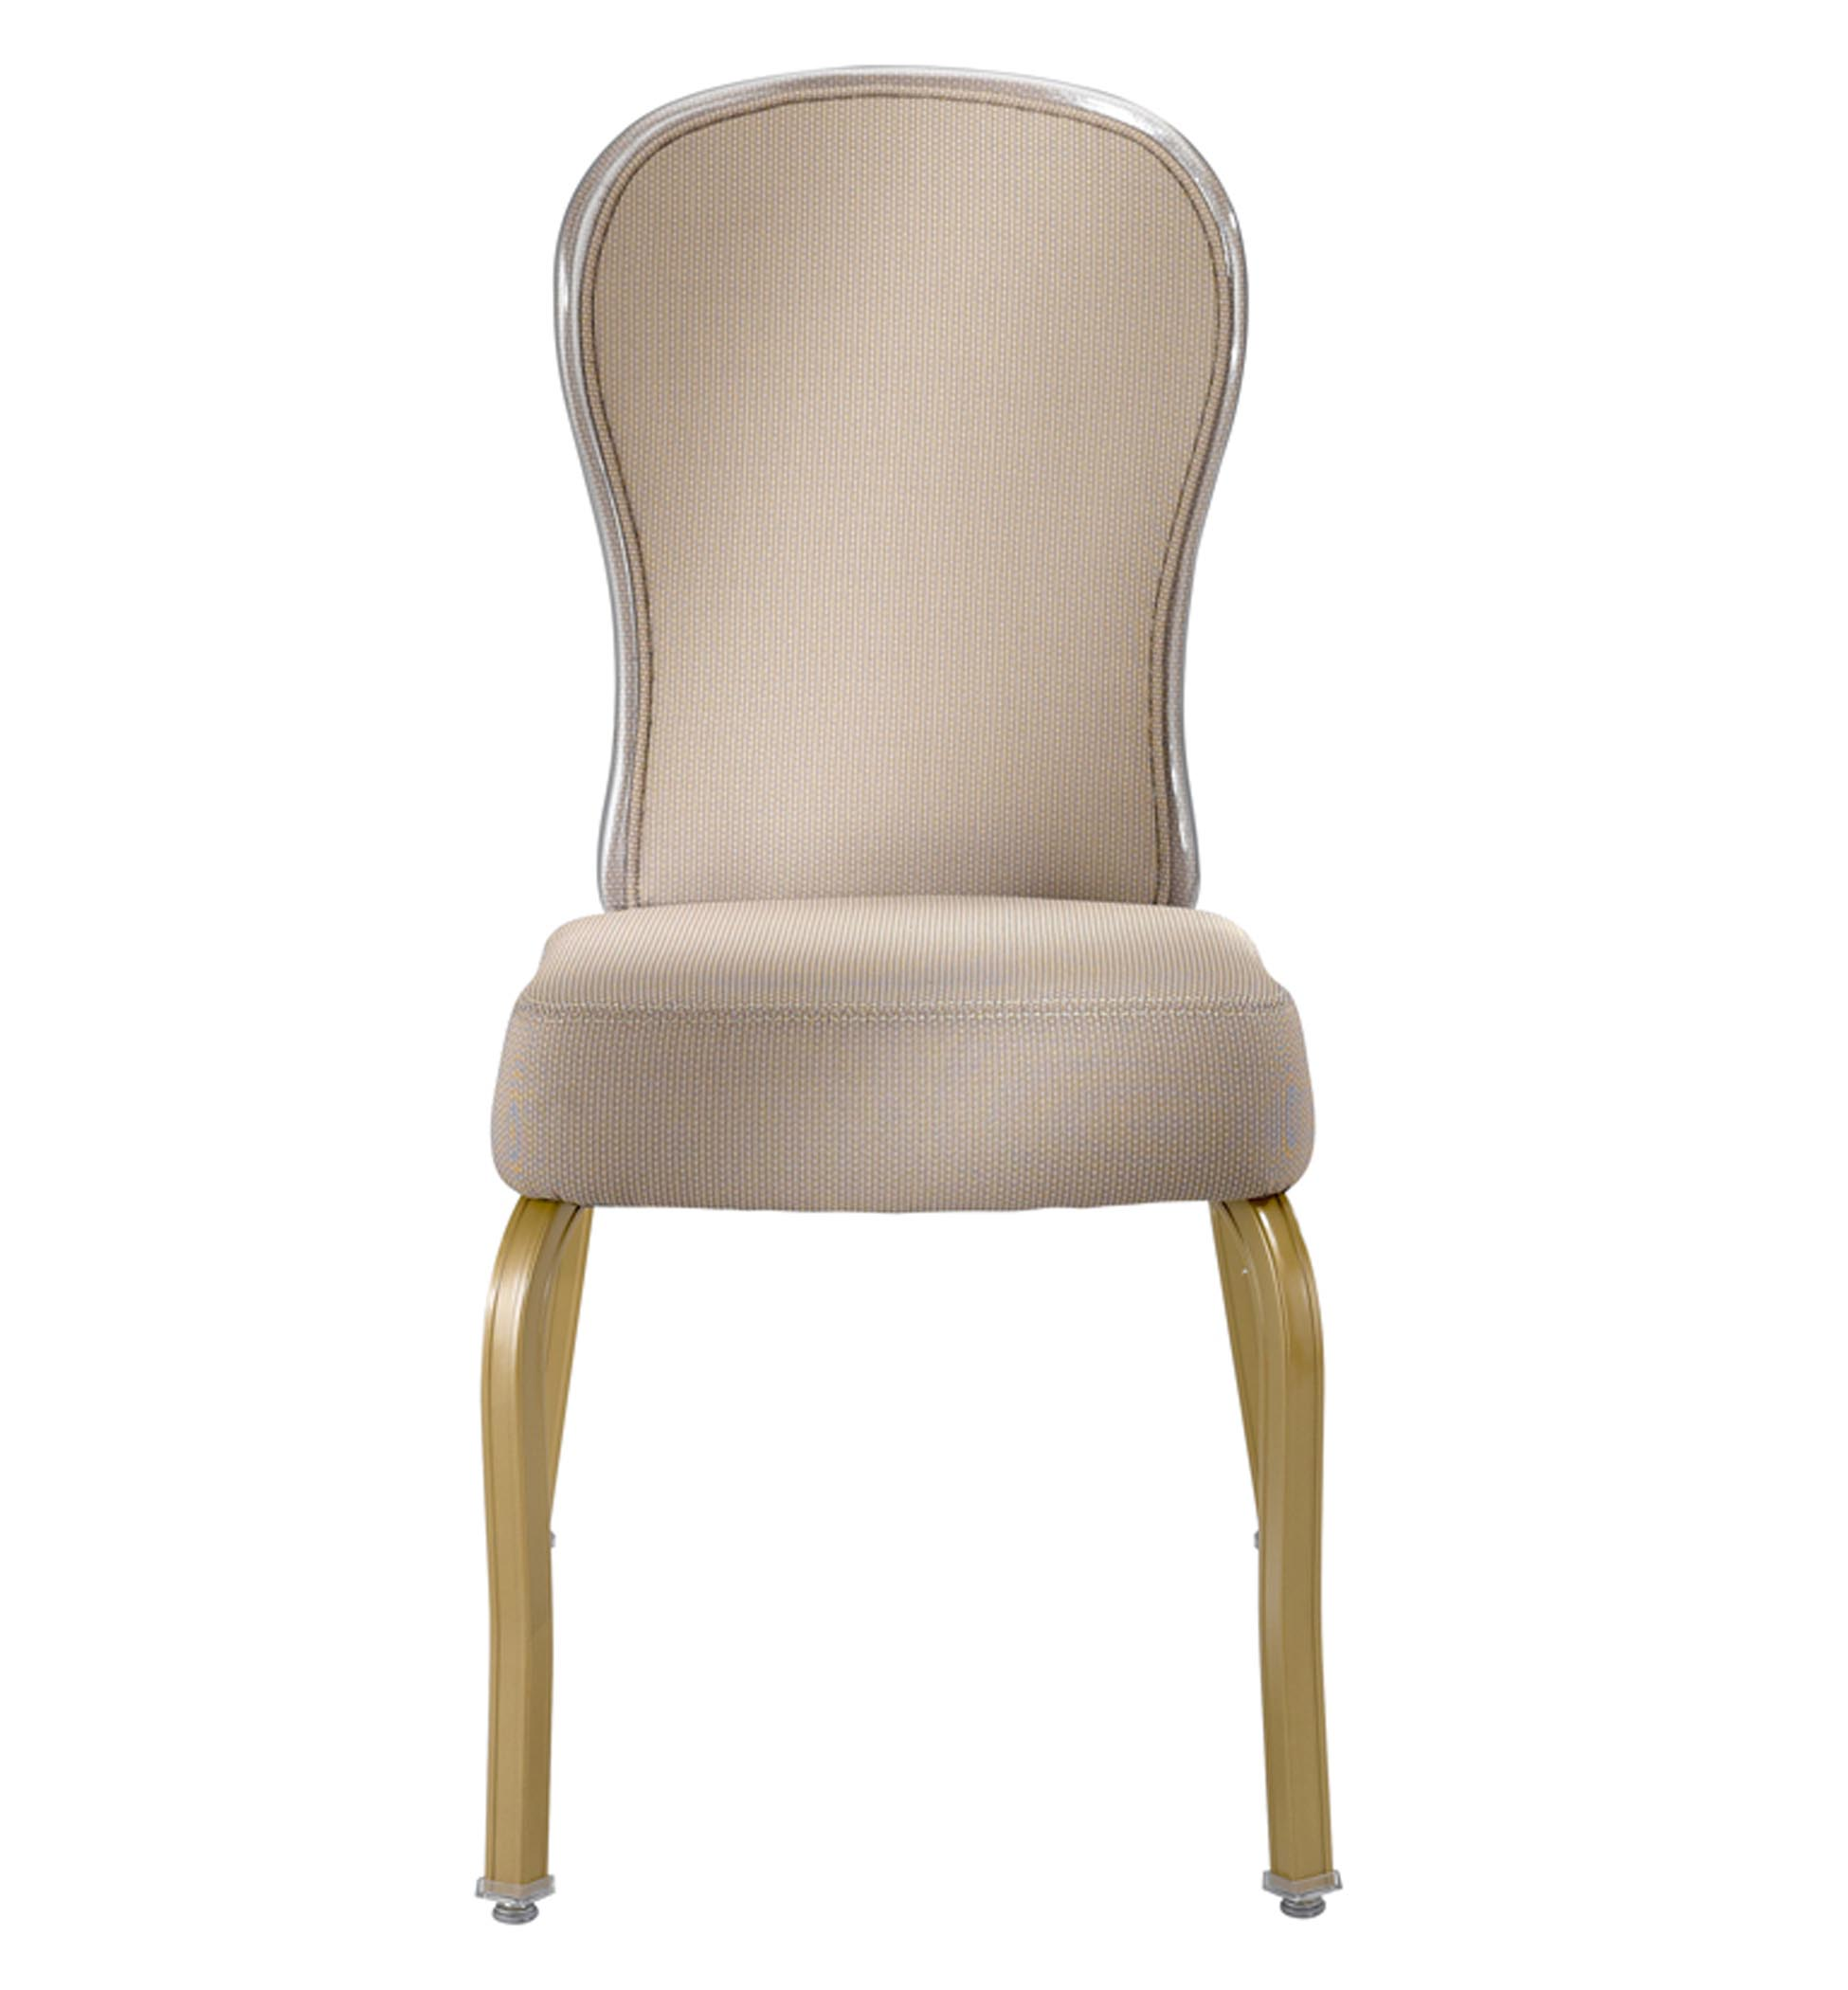 low back chairs for concerts chair graphic design 8129 aluminum banquet